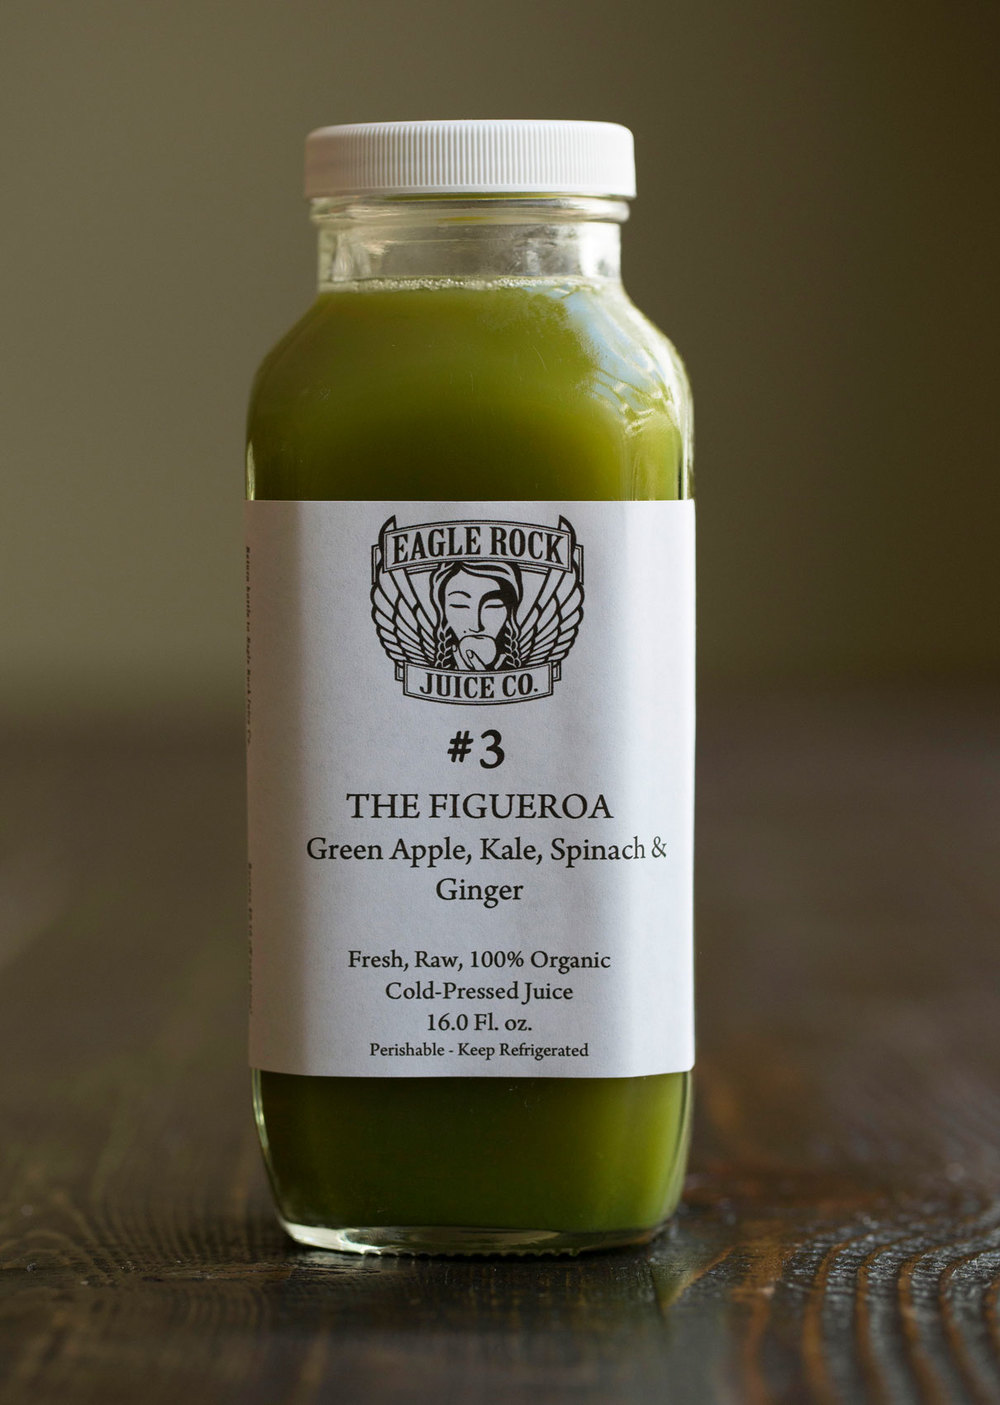 #3 The Figueroa $24.00/12.00/10.00 Green Apple, Kale, Spinach & Ginger